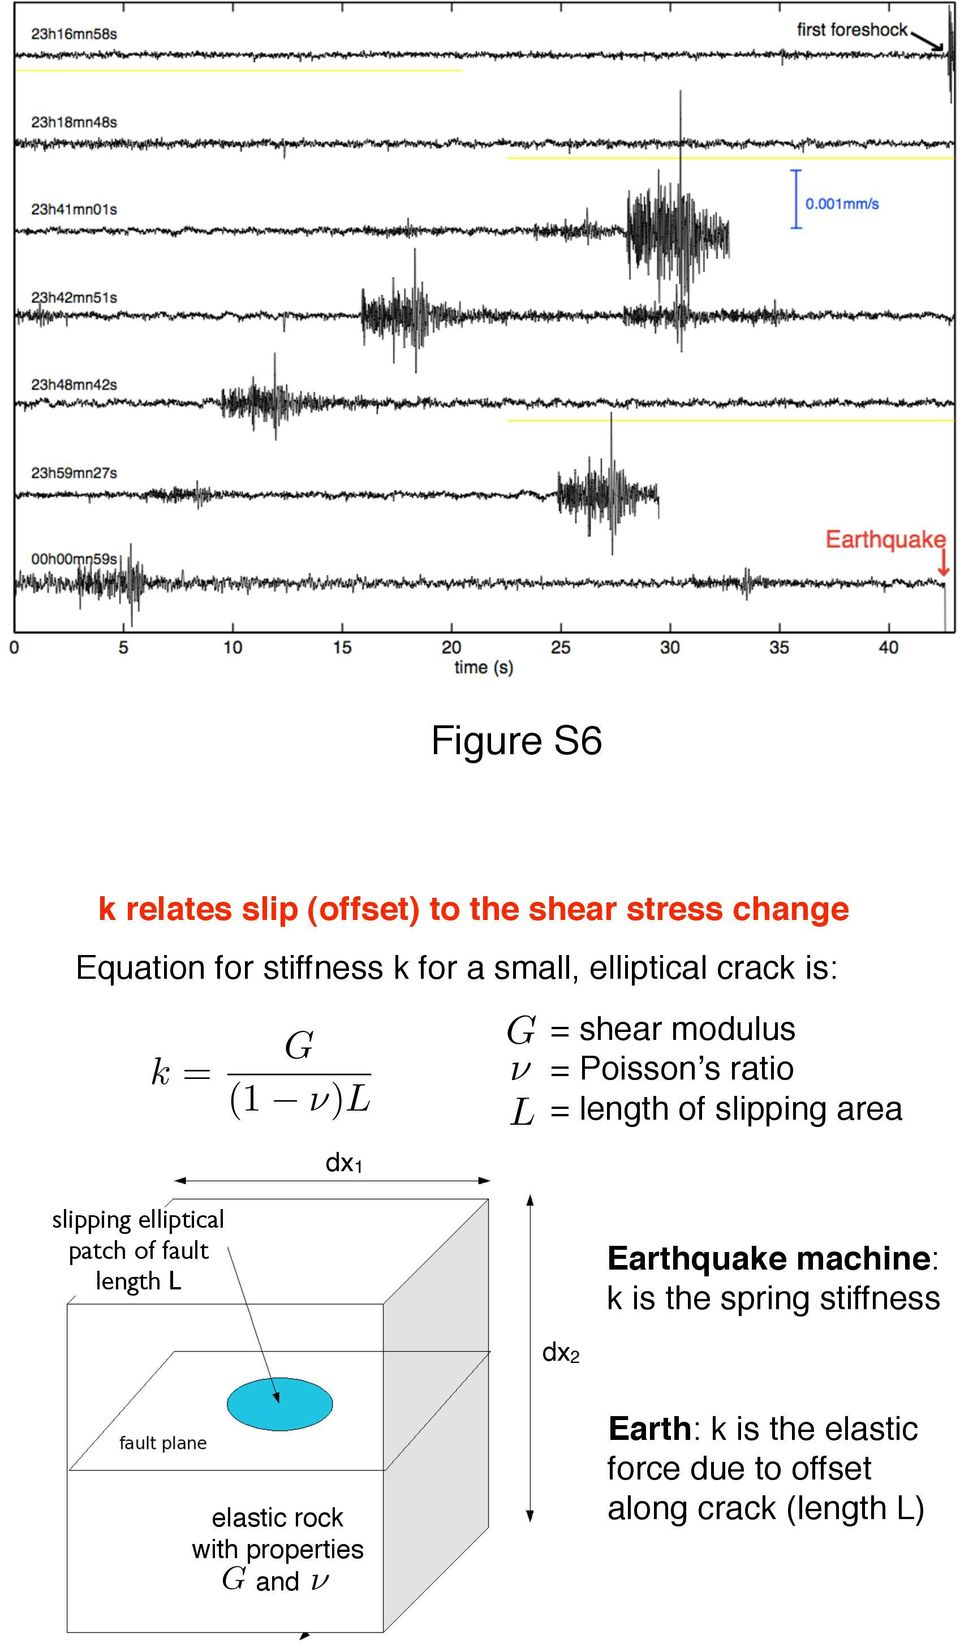 area slipping elliptical patch of fault length L Earthquake machine: k is the spring stiffness dx2